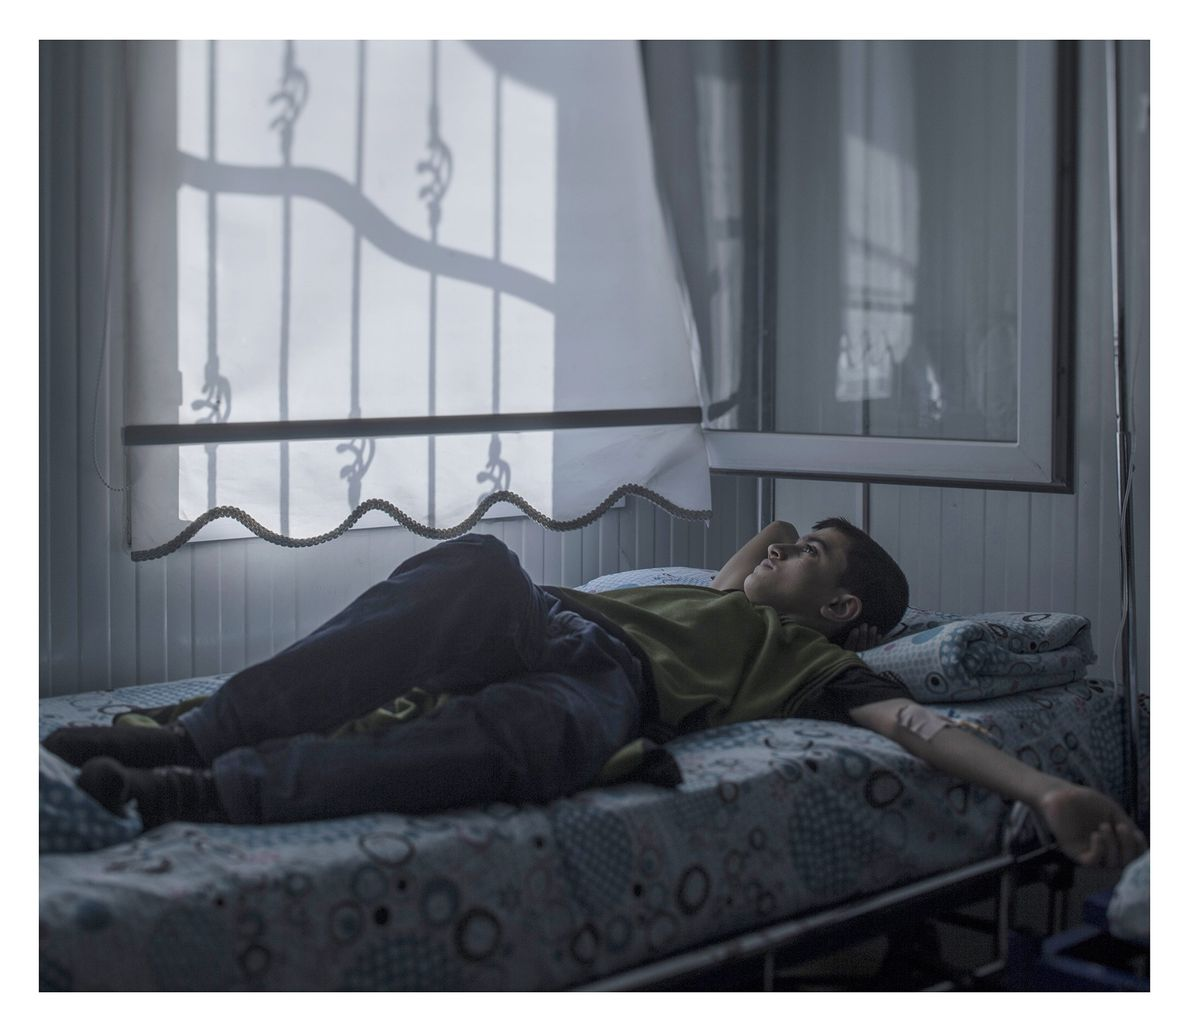 Mohammed, age 13, still dreams of becoming an architect, even while lying in a hospital bed. ...